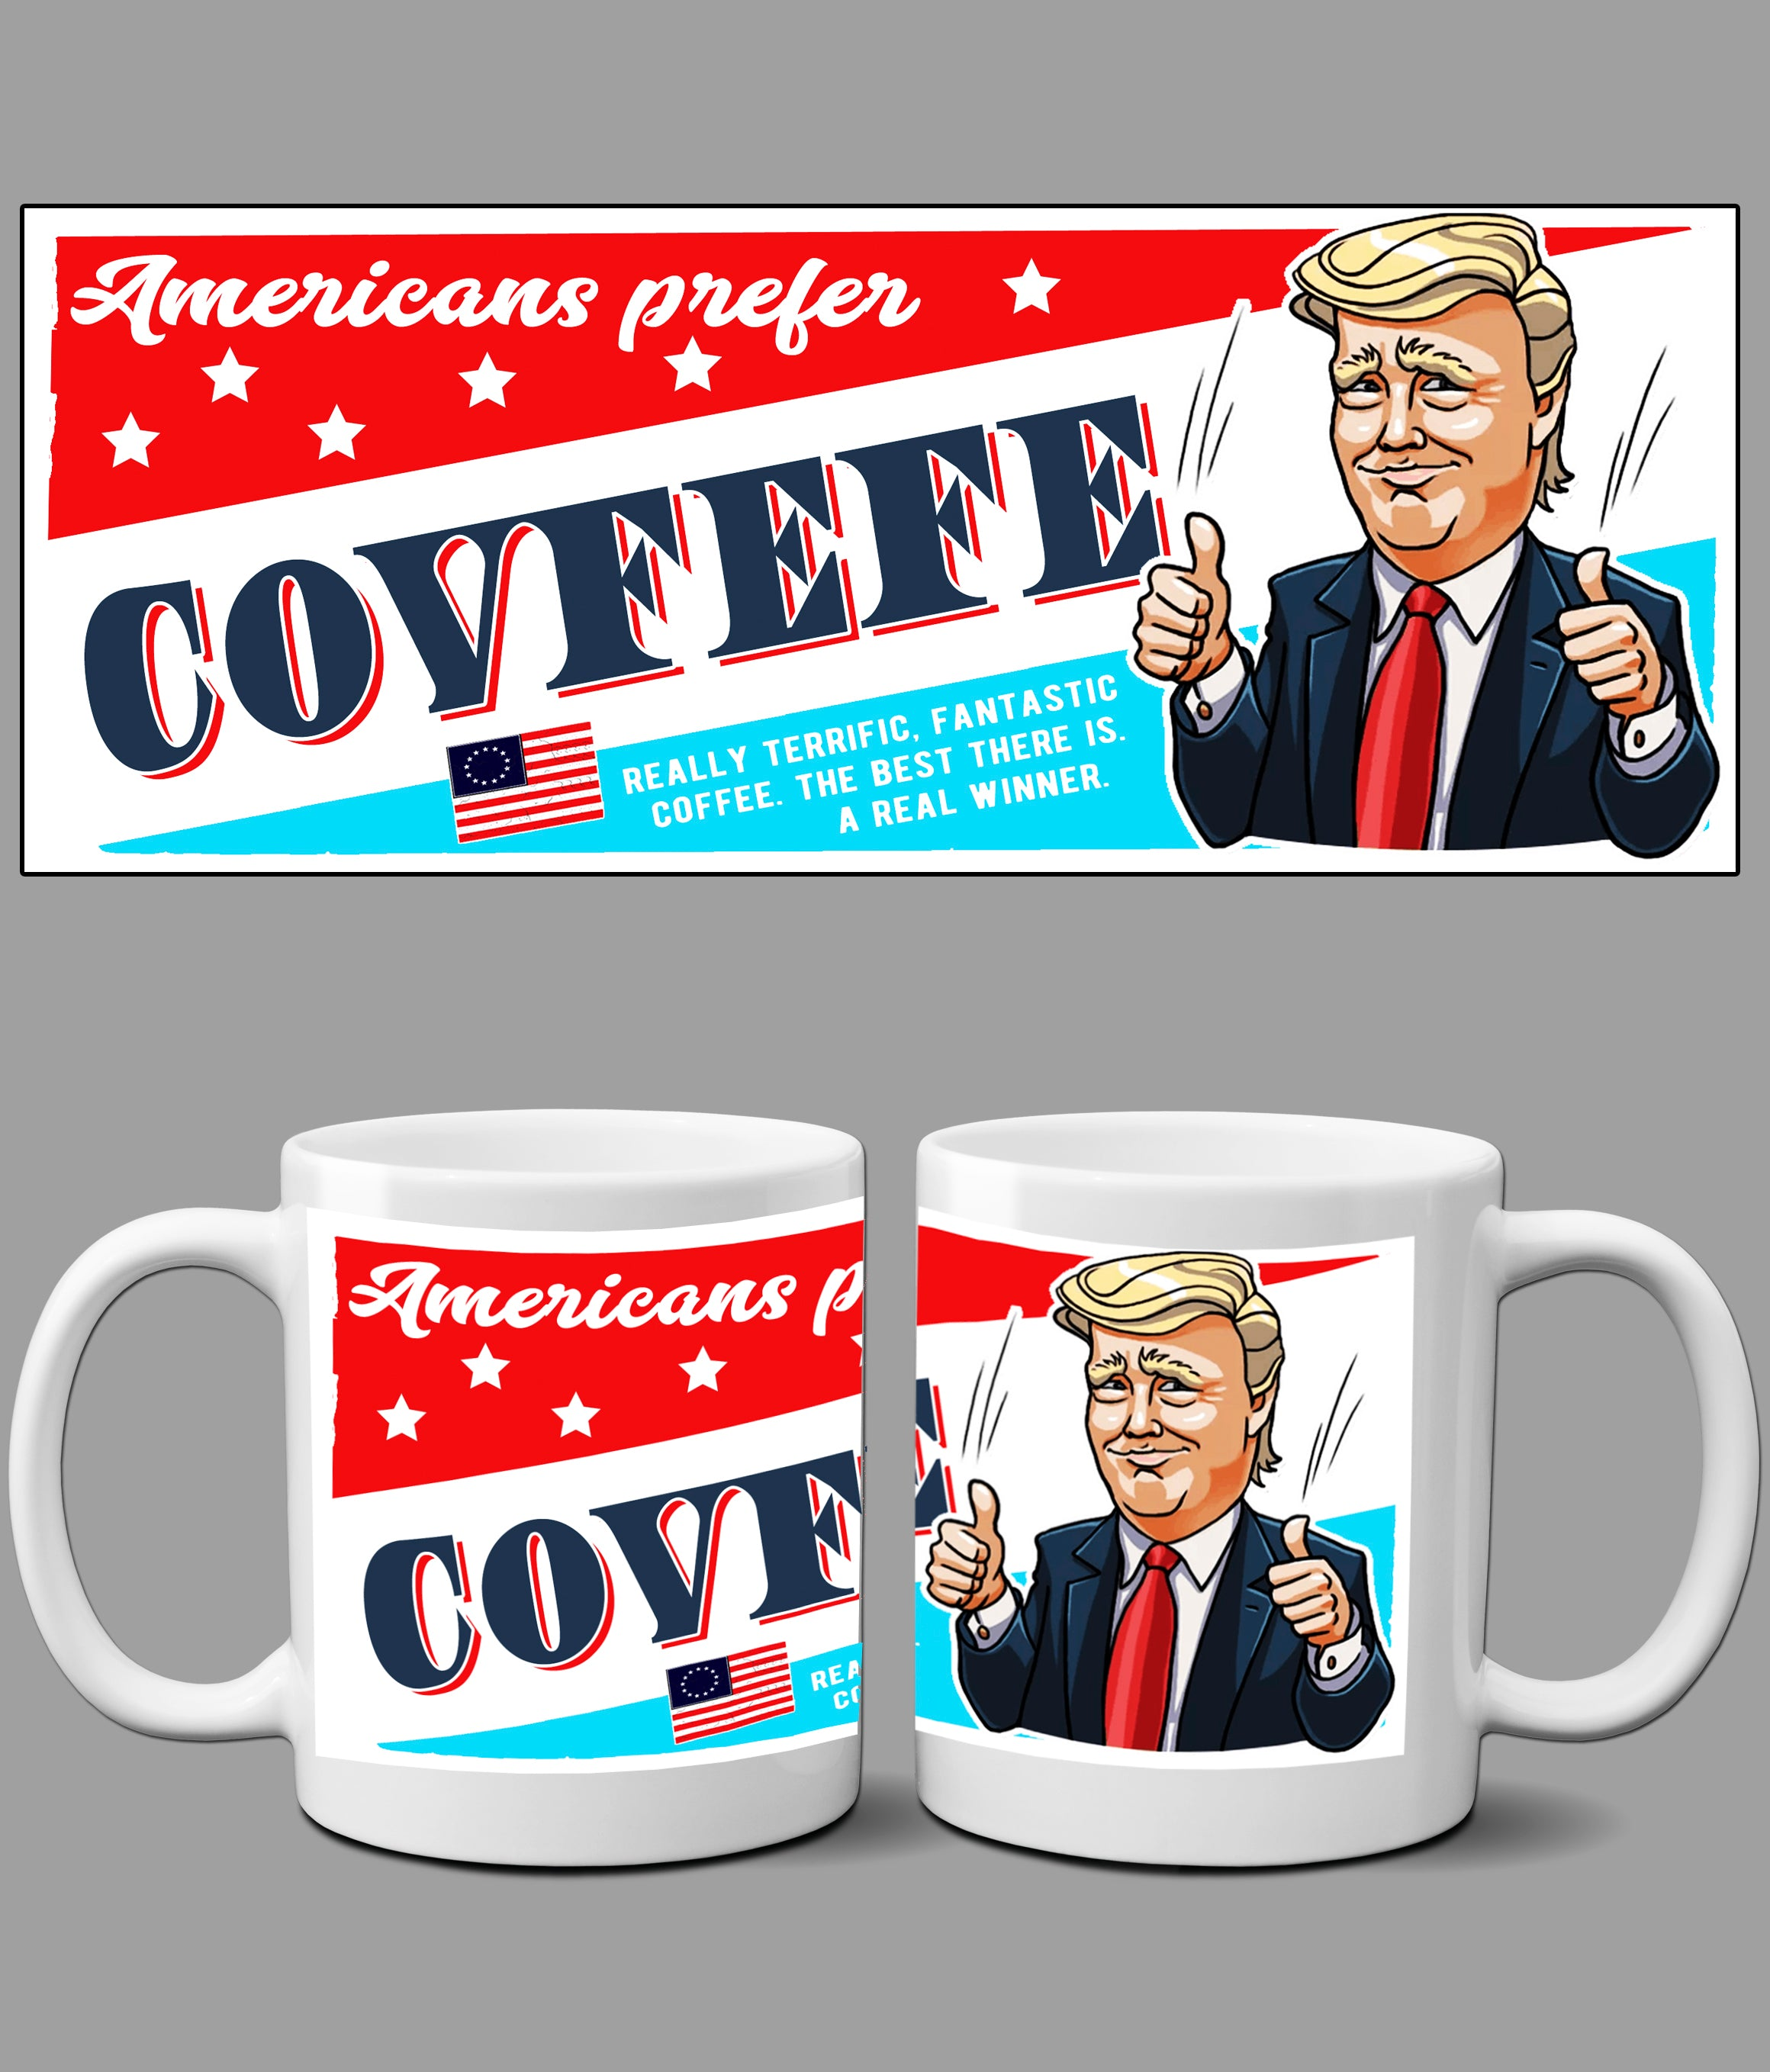 Covfefe mug Trump coffee mug